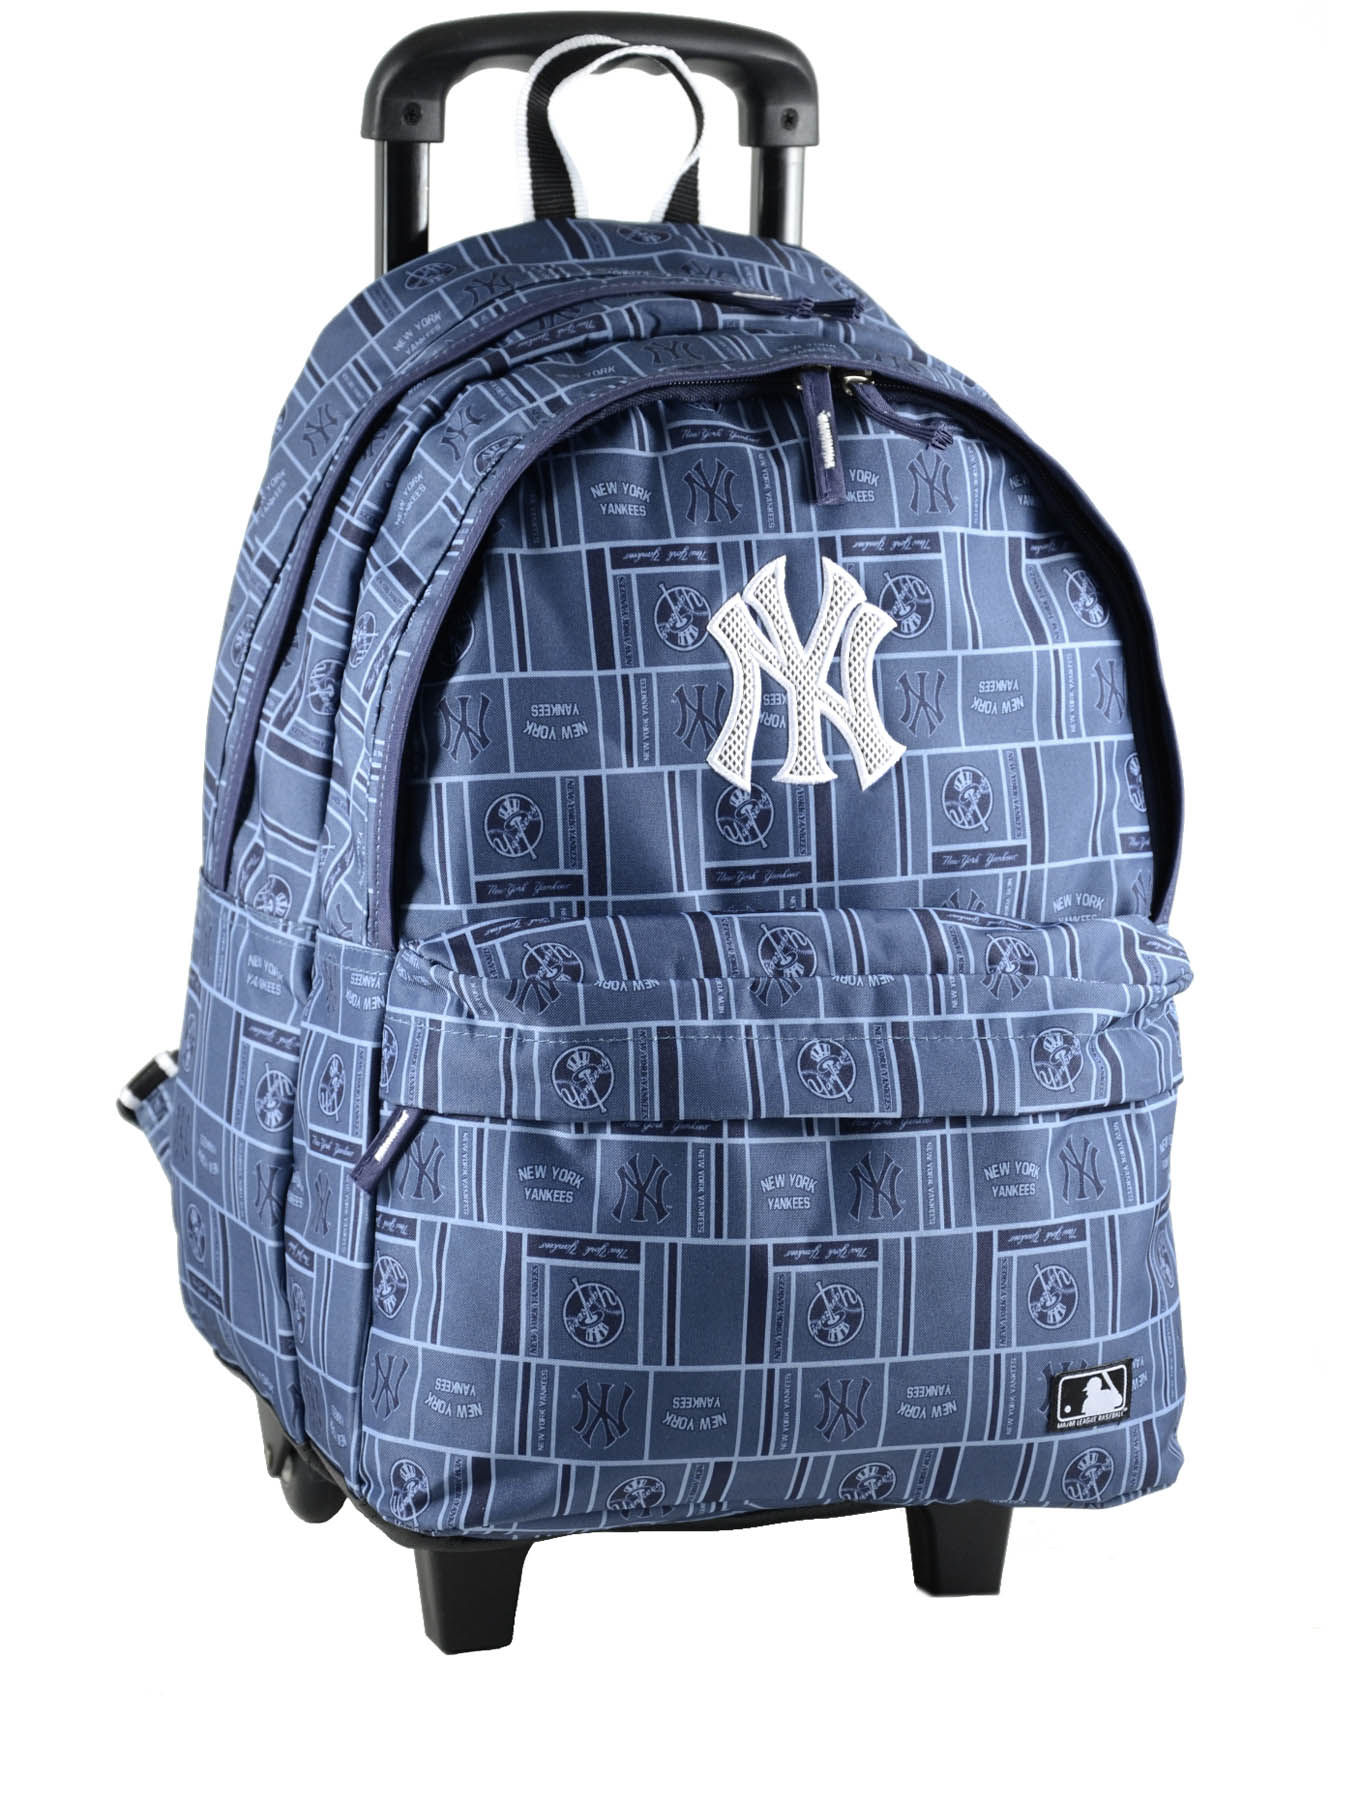 sac a dos a roulette mlb new york yankees bleu yankee mlz22045. Black Bedroom Furniture Sets. Home Design Ideas